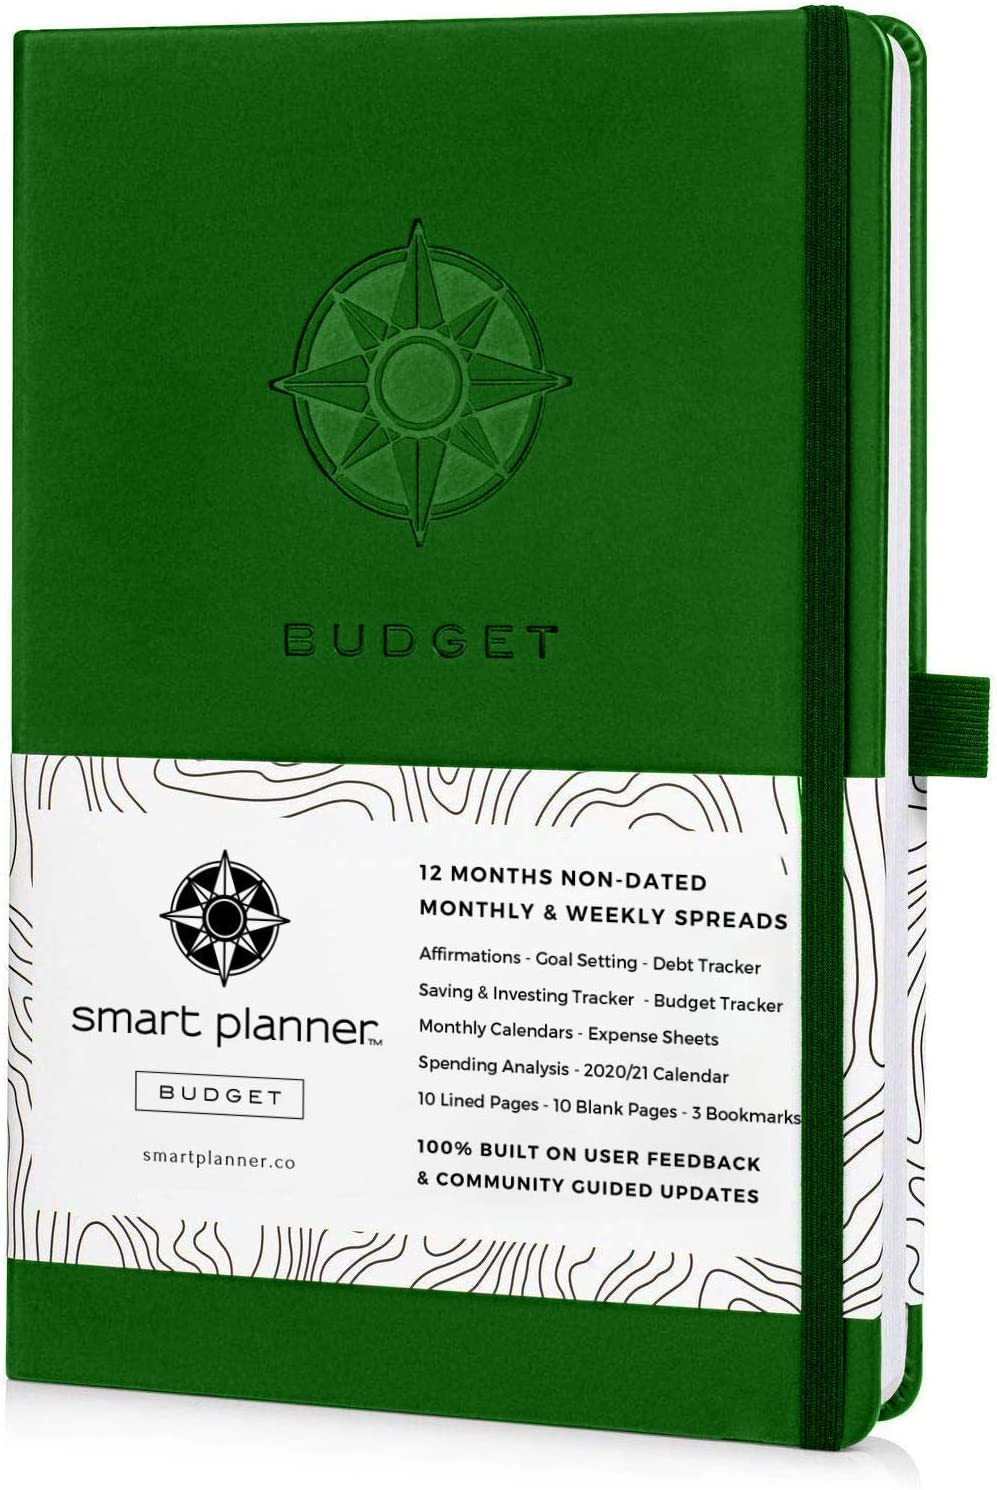 Smart Planner Budget Book – Budget Planner Organizer with Calendars, Debt Tracker, Expense Sheets, Savings Trackers and More – Inner Pocket for Receipts – Non-Dated (Green)